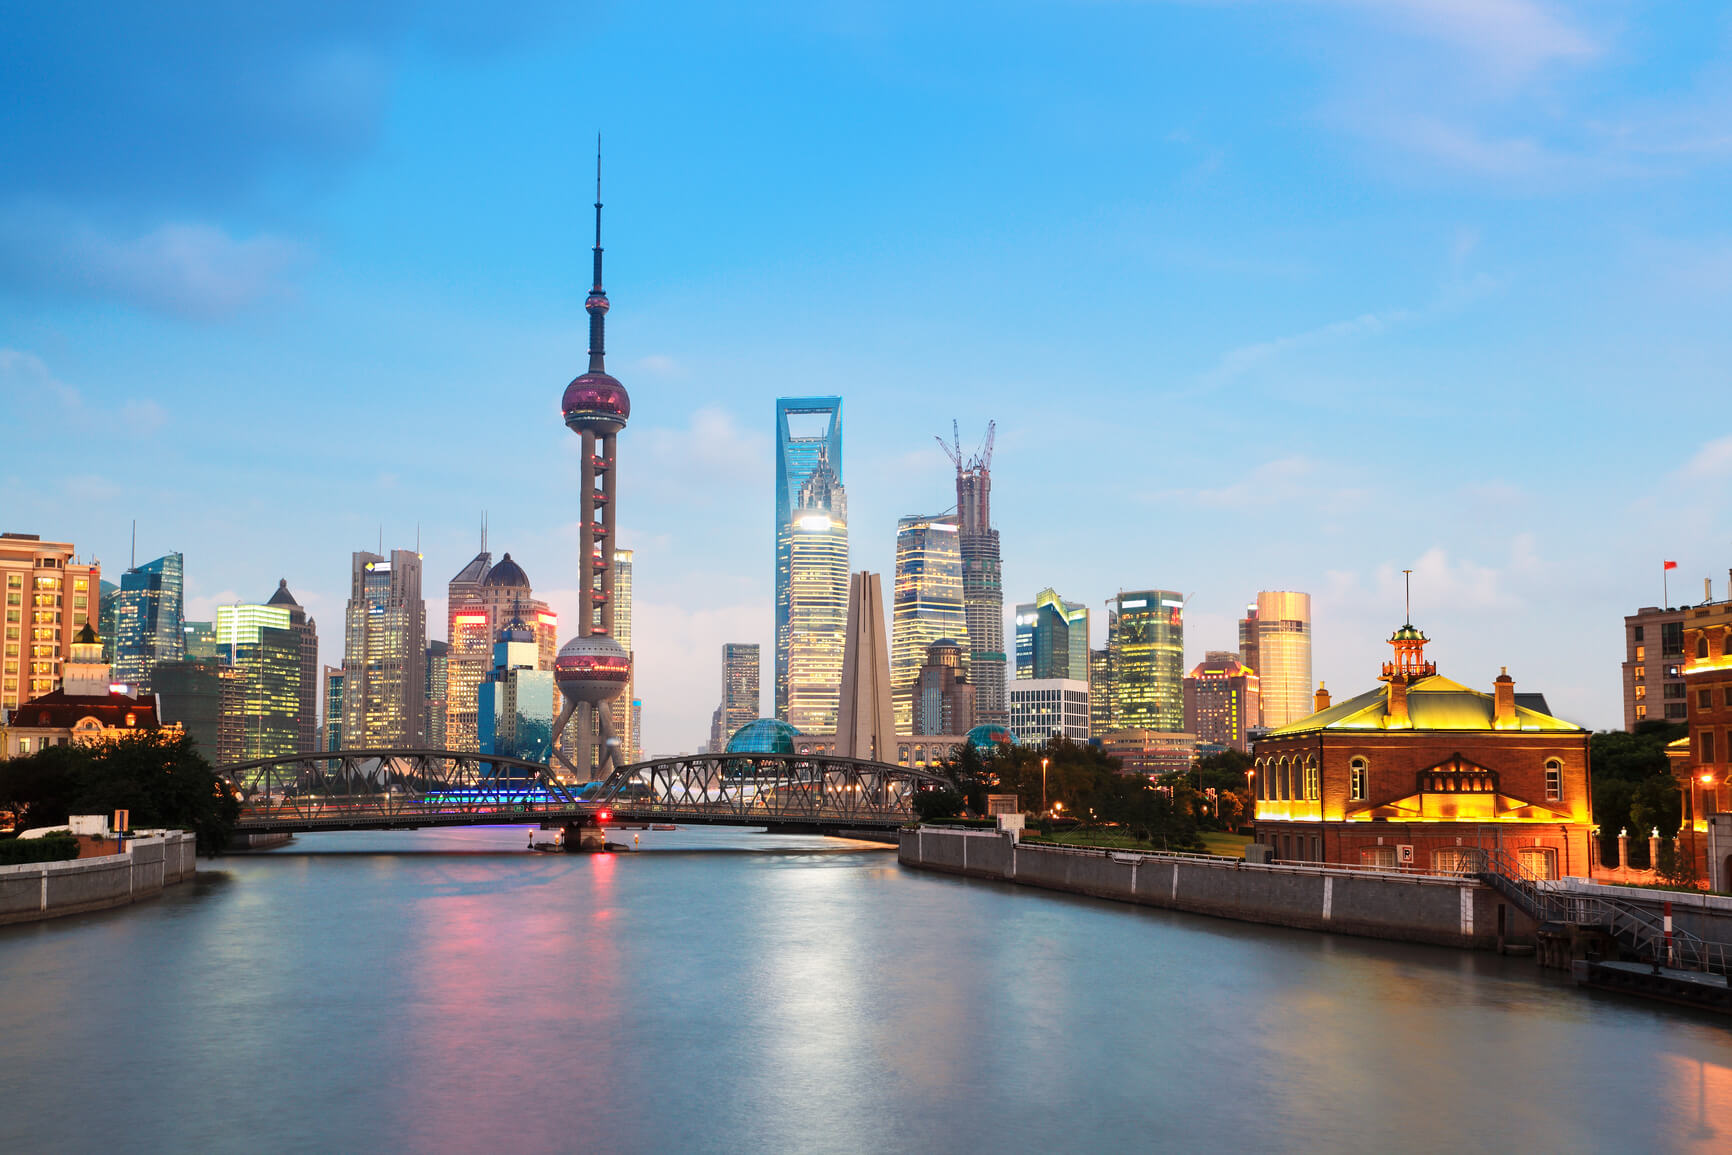 Santa Barbara, California to Shanghai, China for only $334 roundtrip